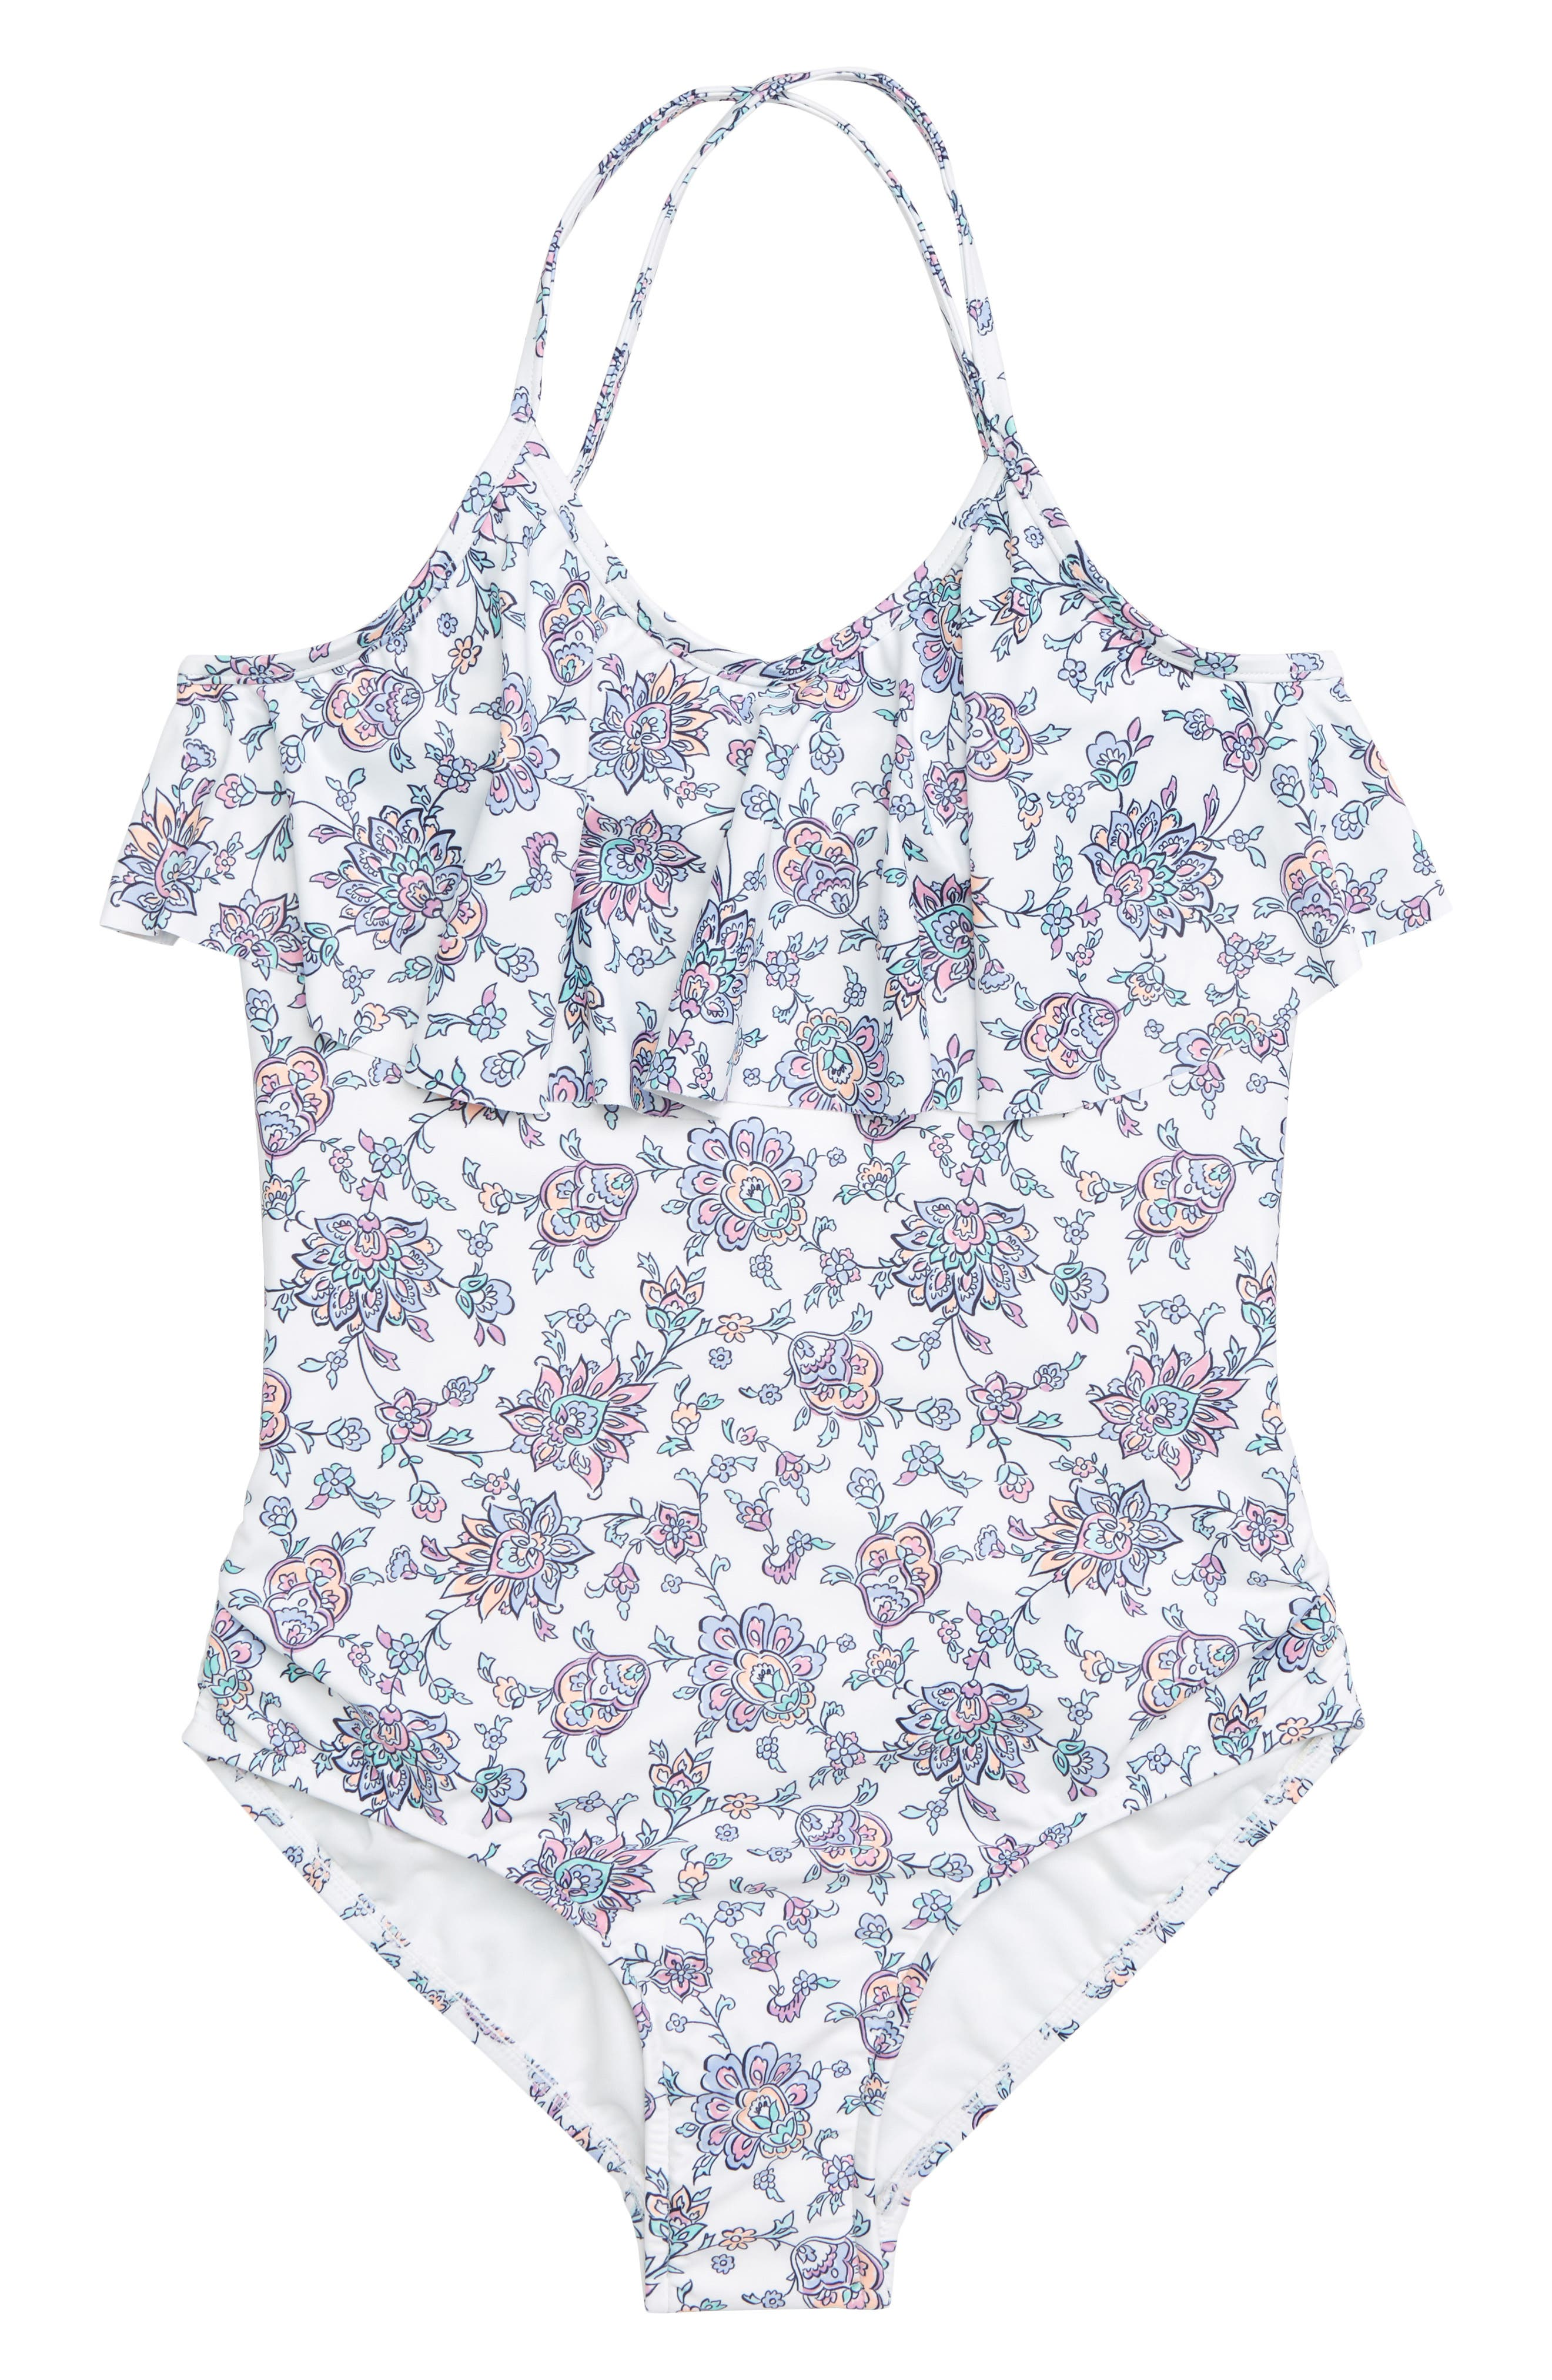 Pop Palace Ruffle One-Piece Swimsuit,                             Main thumbnail 1, color,                             WHITE FLORAL